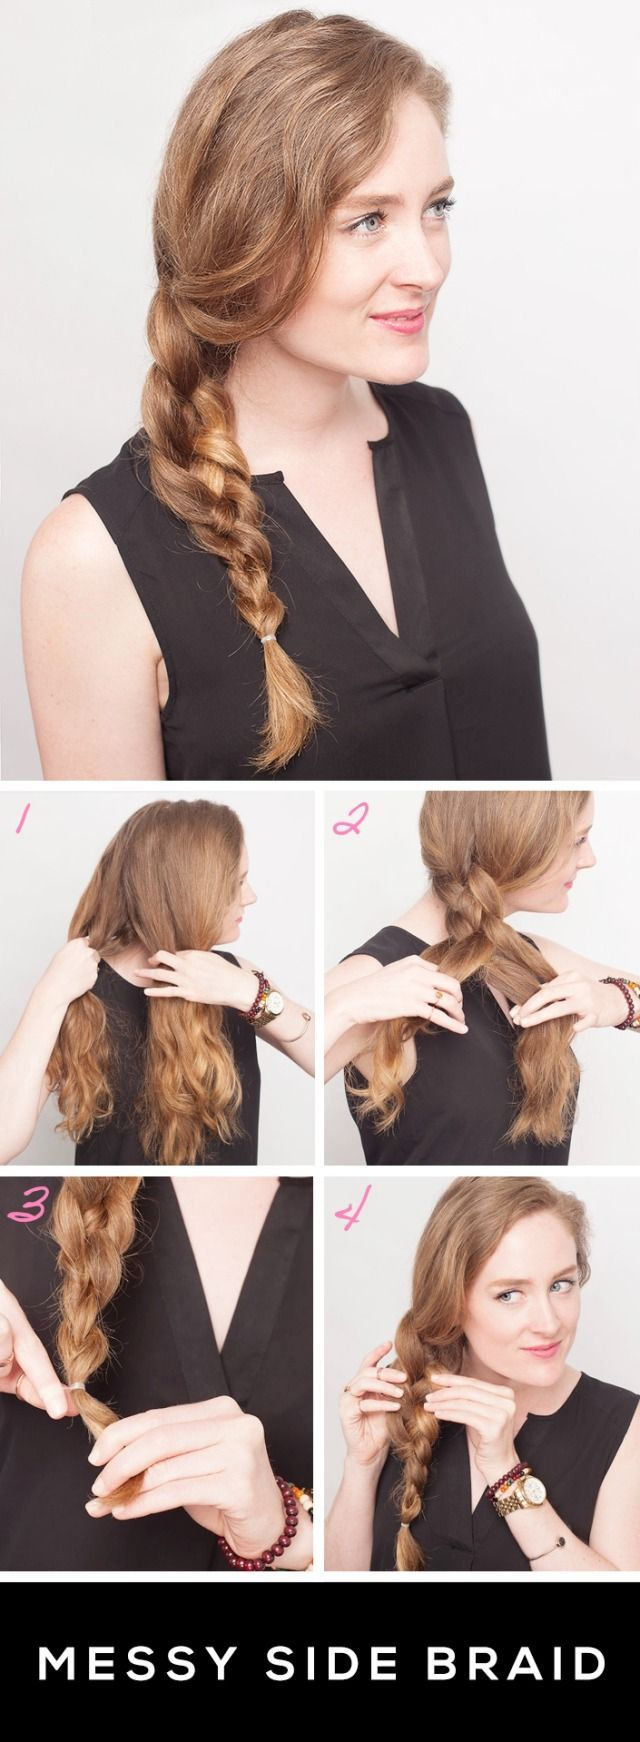 MESSY SIDE BRAID TUTORIAL - how to get this gorgeous braided hairstyle.